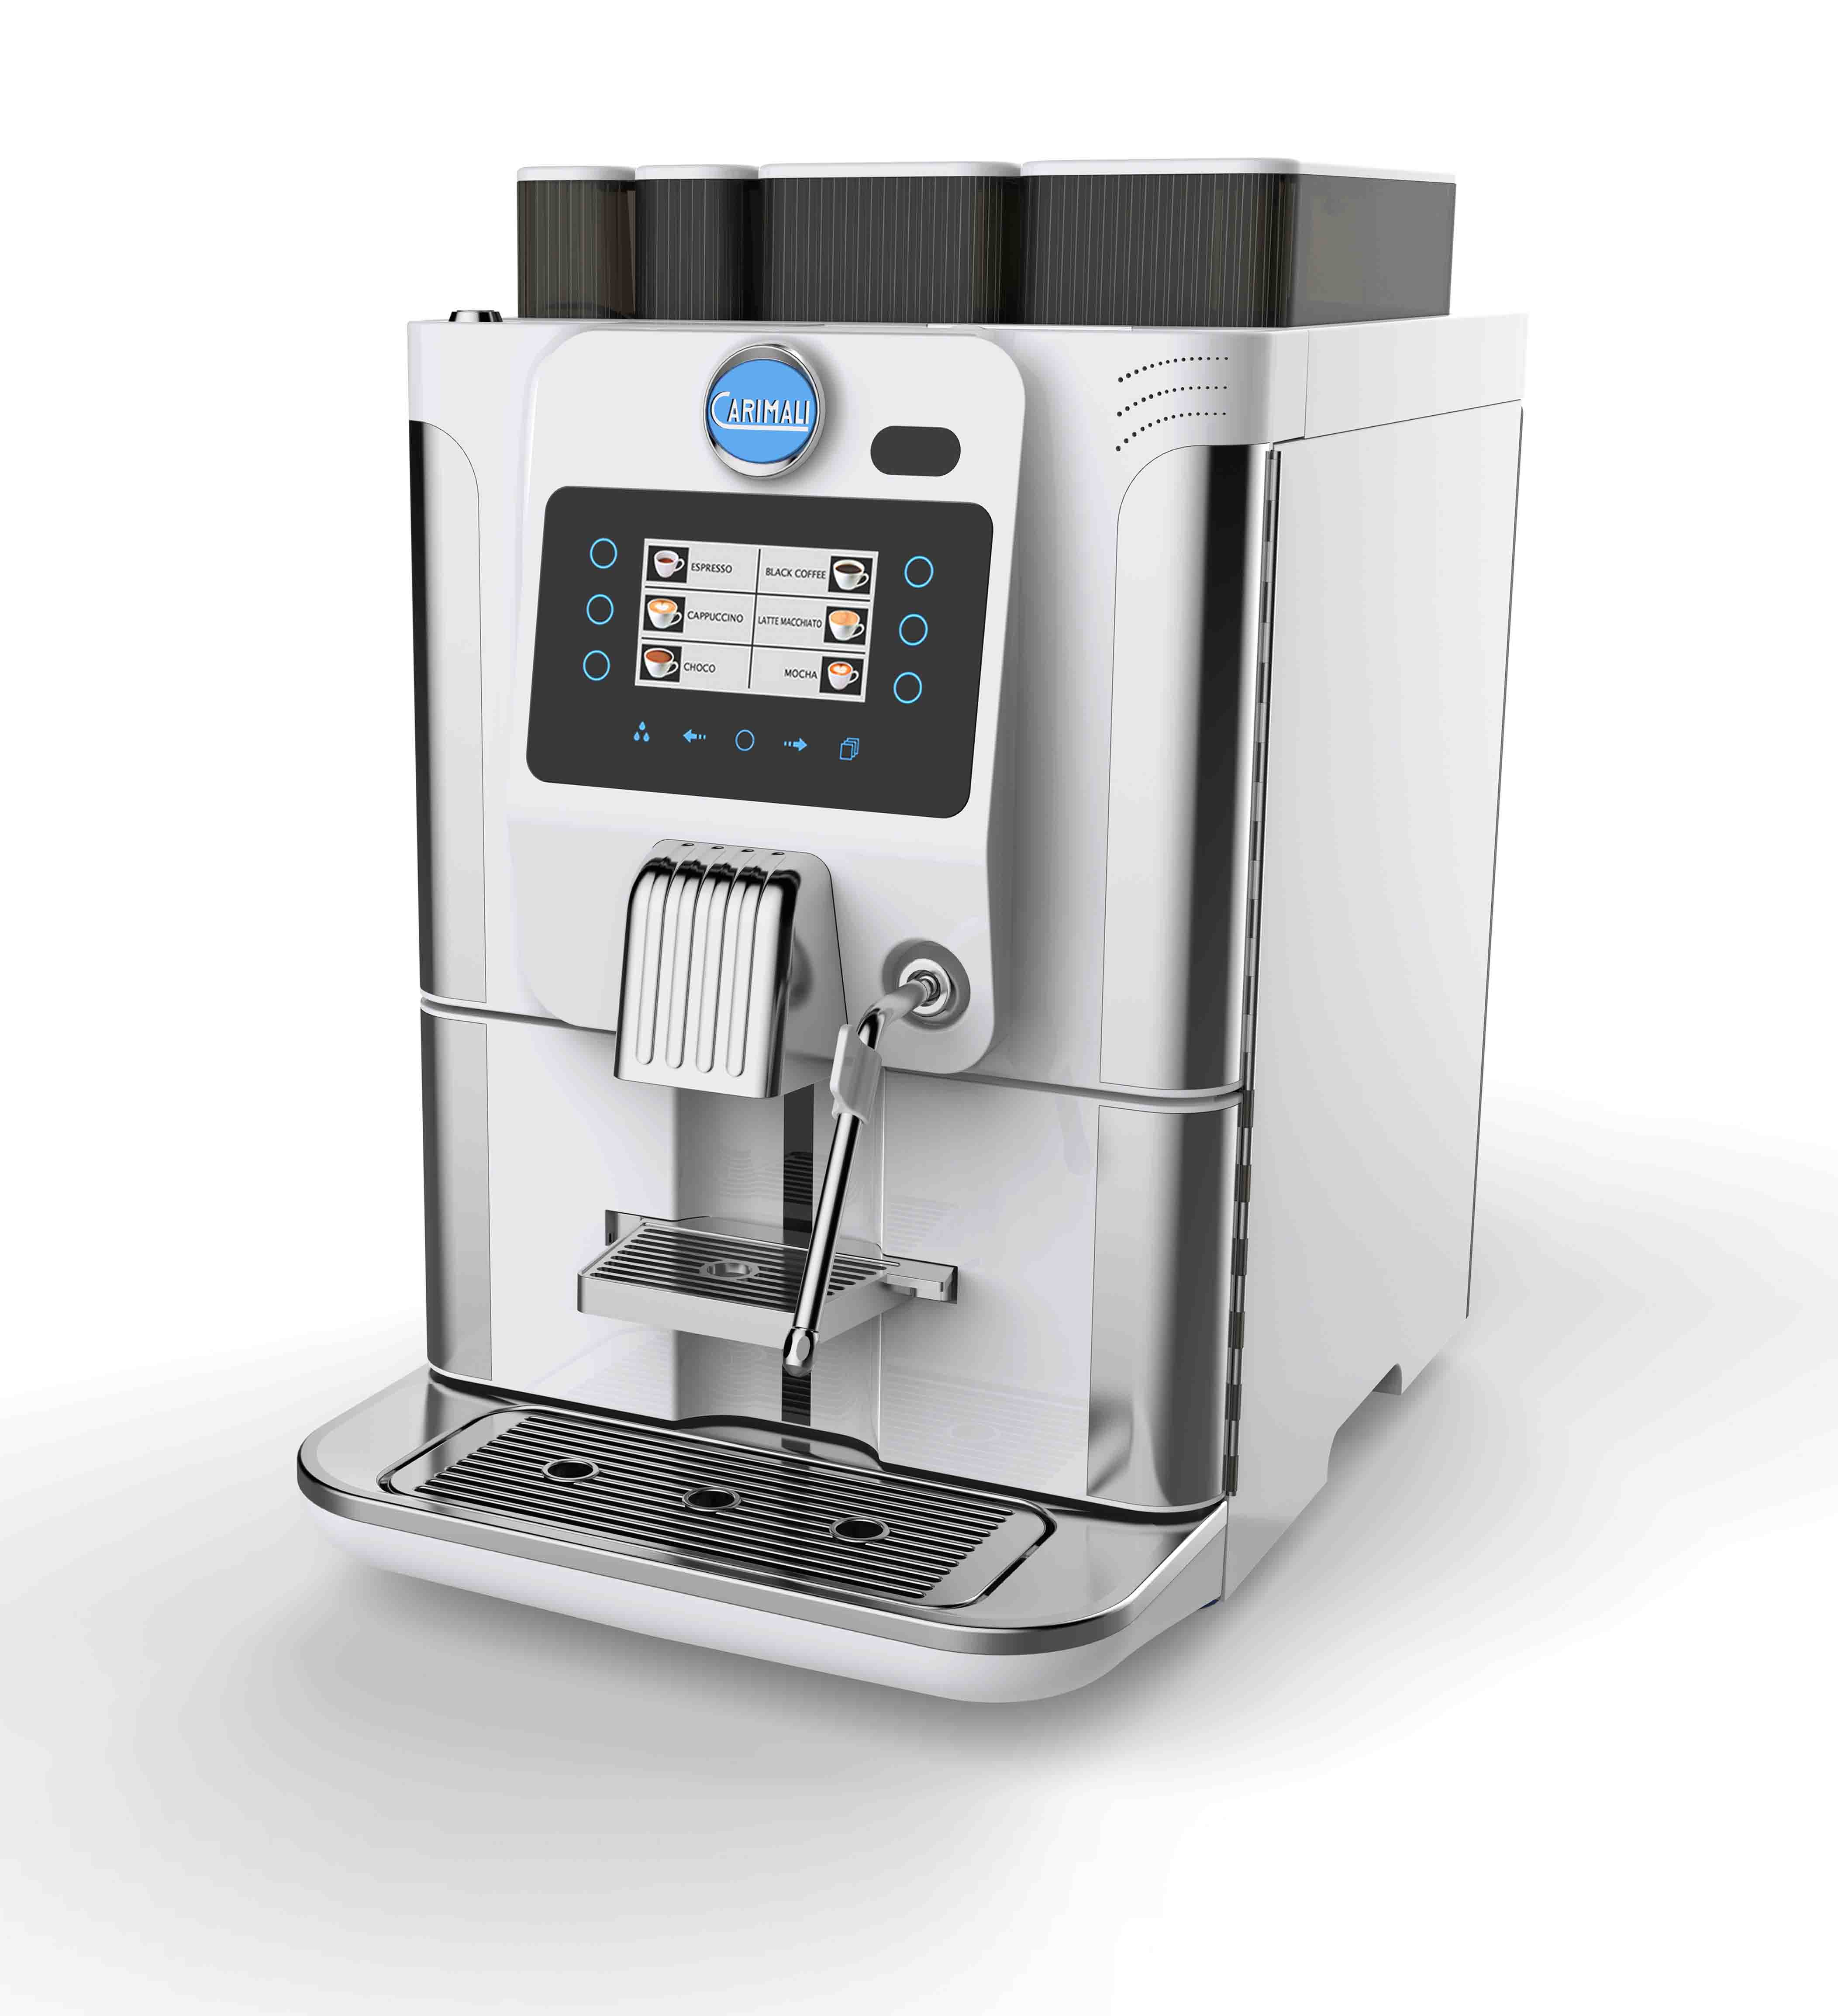 carimali coffee machine service manual